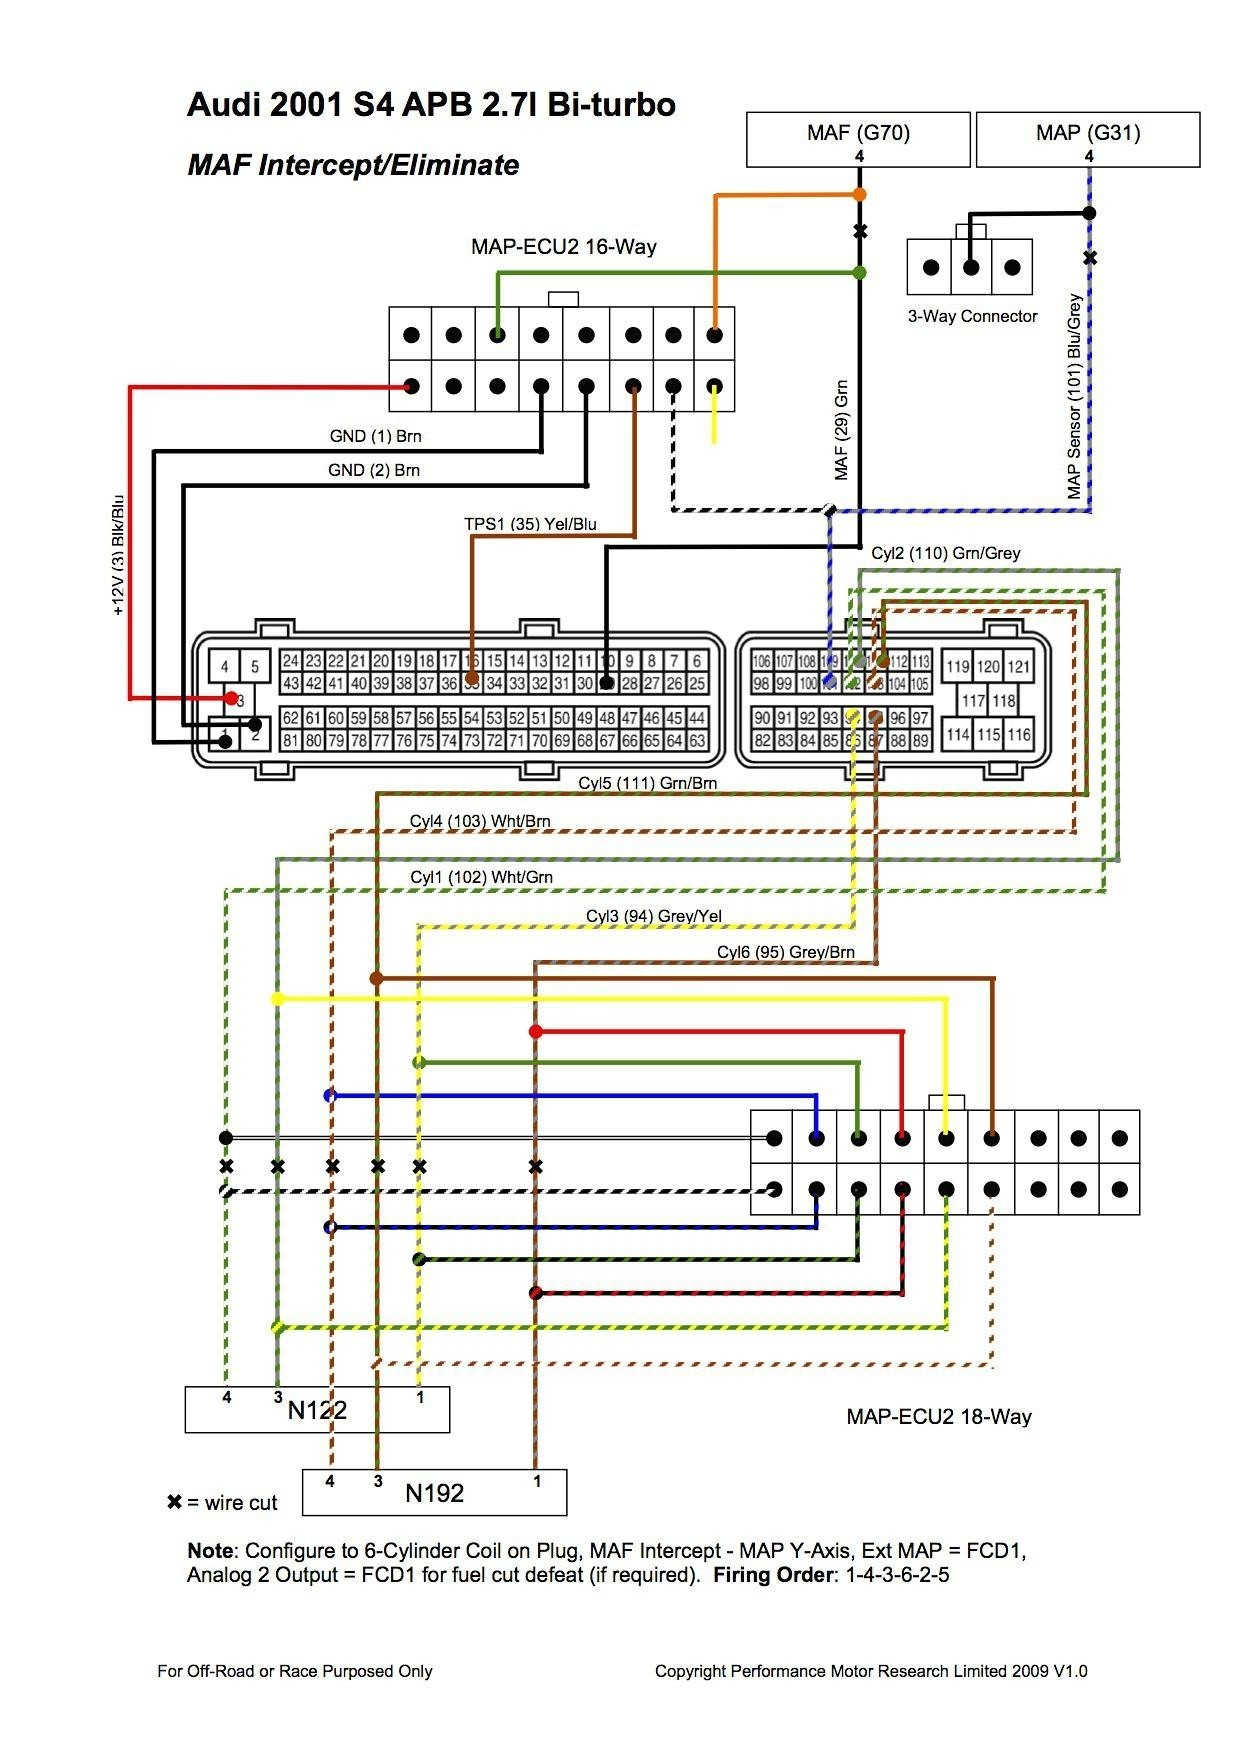 1996 Dodge Ram Radio Wiring Diagram - Wiring Diagram Replace  meet-progressive - meet-progressive.miramontiseo.it | 97 Ram Radio Wiring Harness |  | meet-progressive.miramontiseo.it